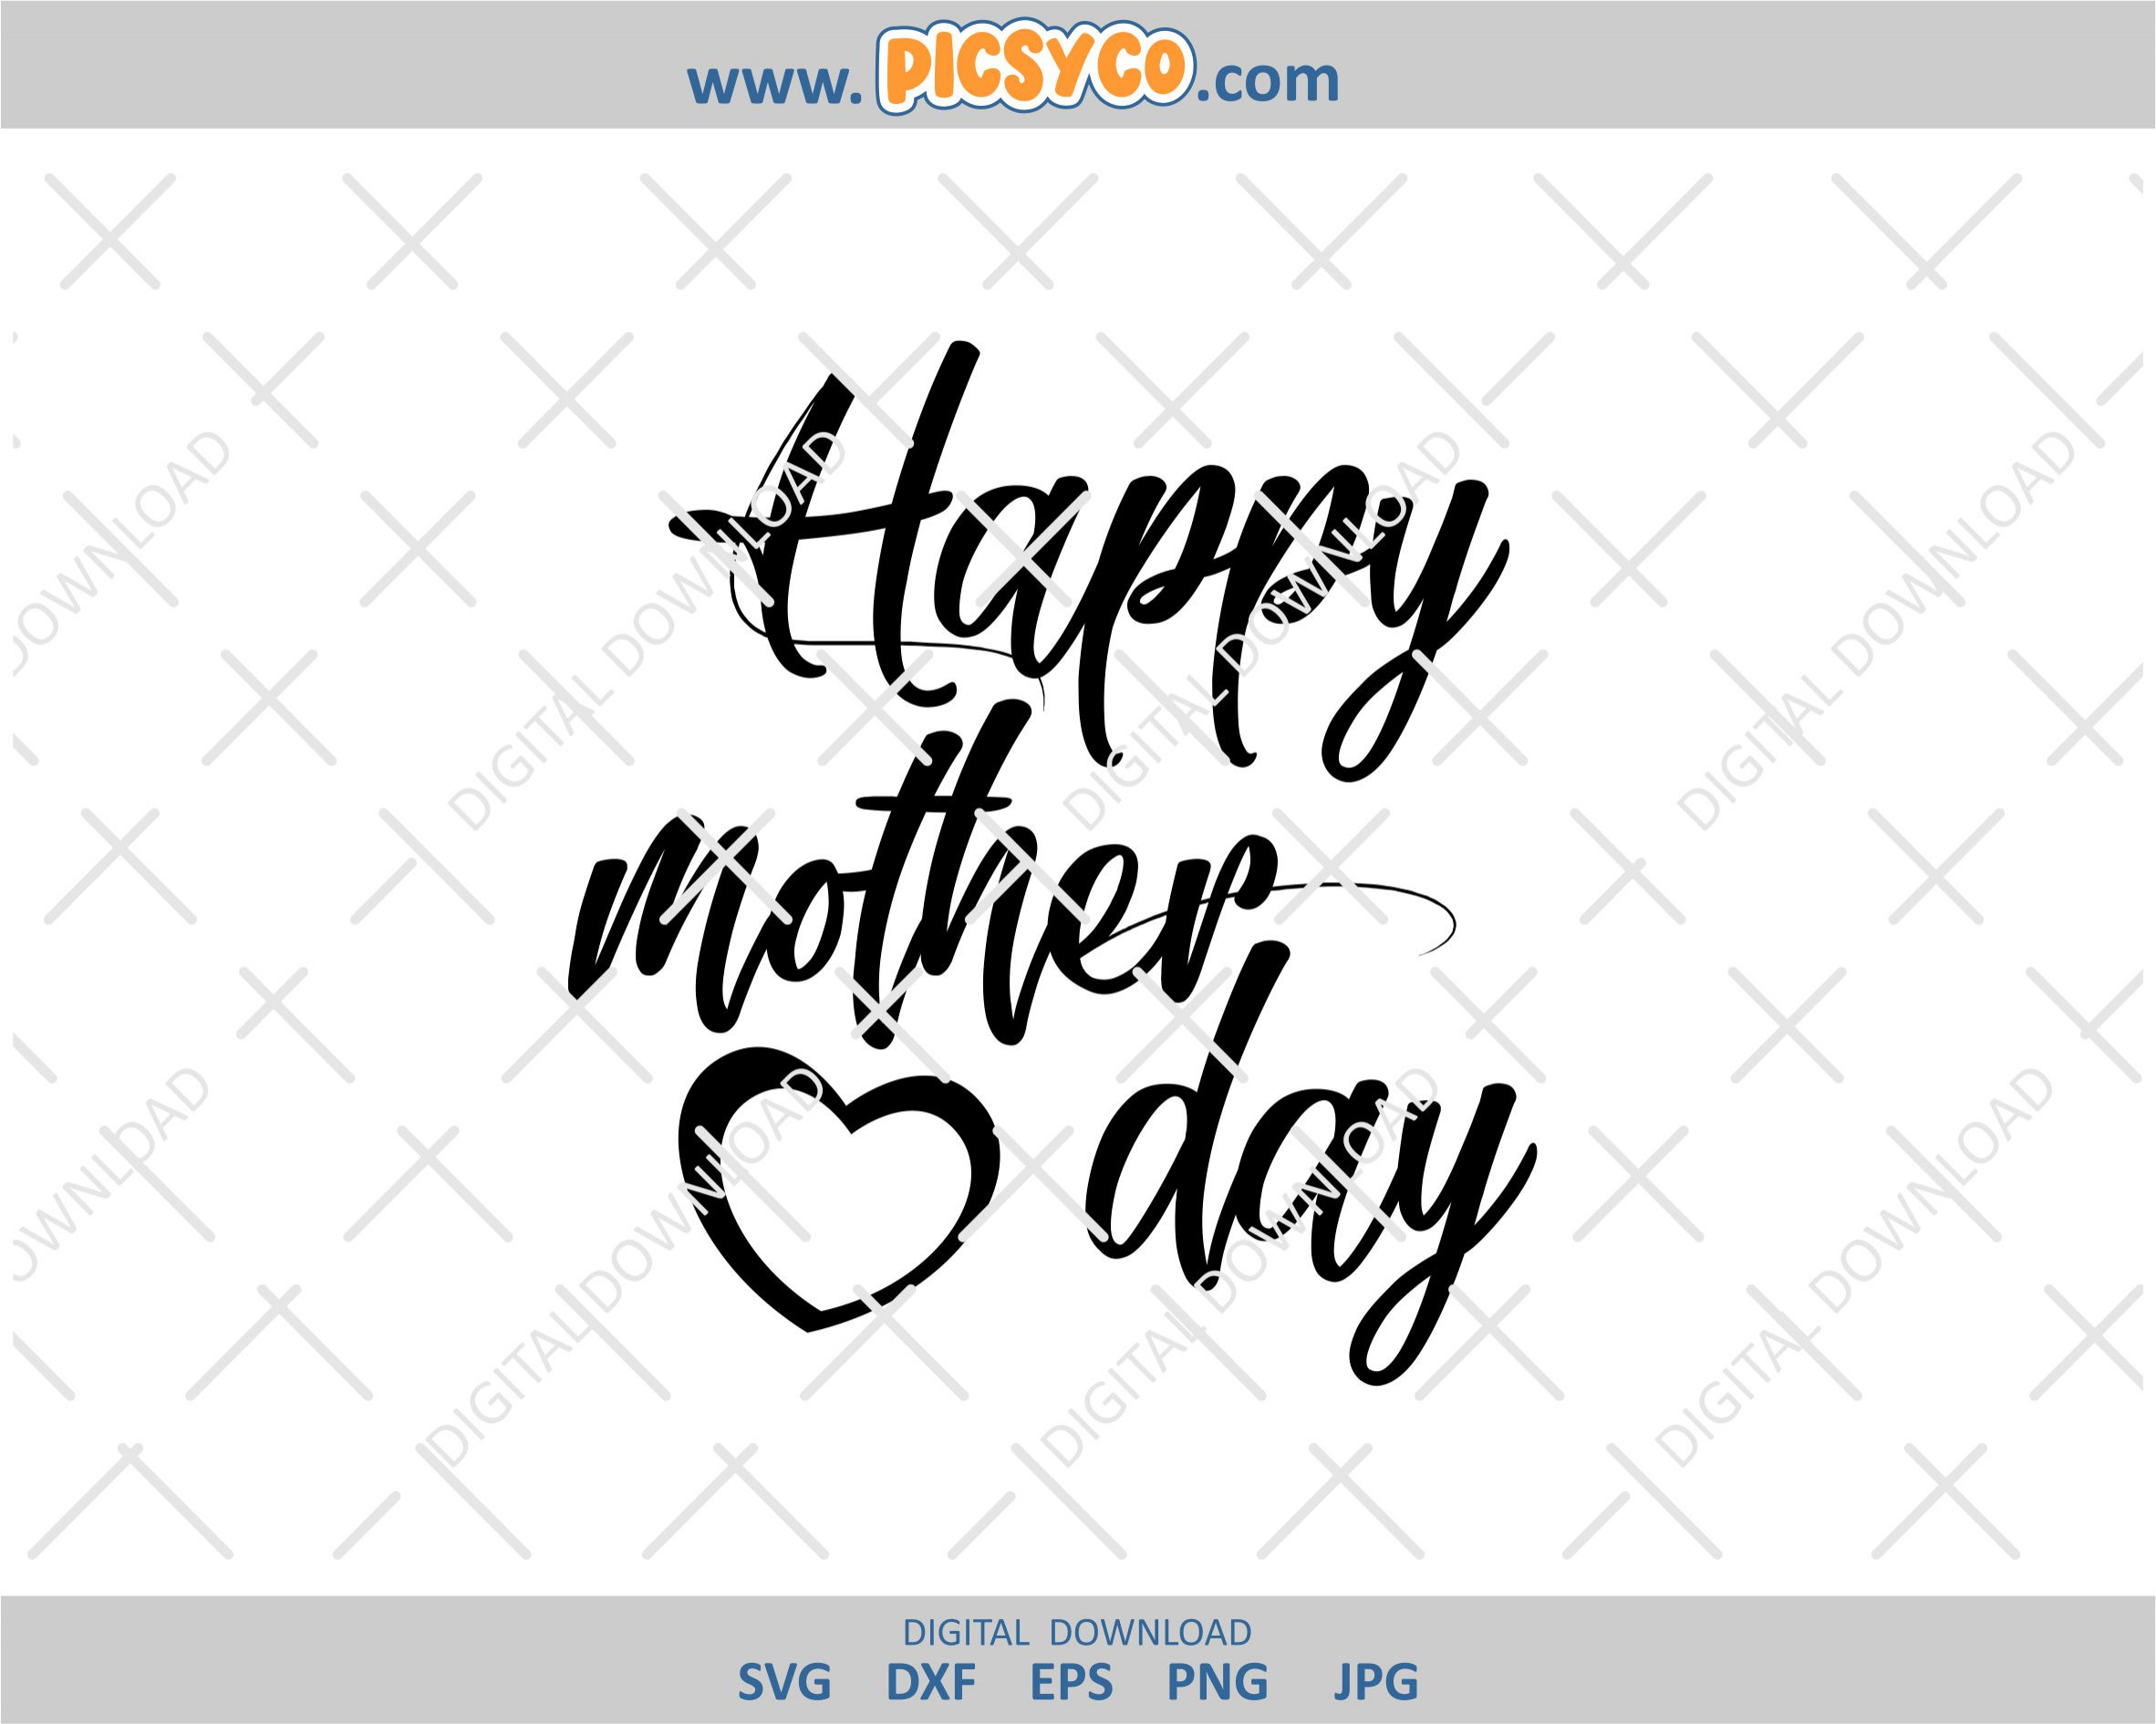 Free Quotes for nurse appreciation gifts include nurse life with stethoscope, nursing is a work of heart and more. Happy Mother Day Svg Mother S Day Png Free Files Download Family Svg Design Family Files Family Cut File Svg Png Picsyco SVG, PNG, EPS, DXF File